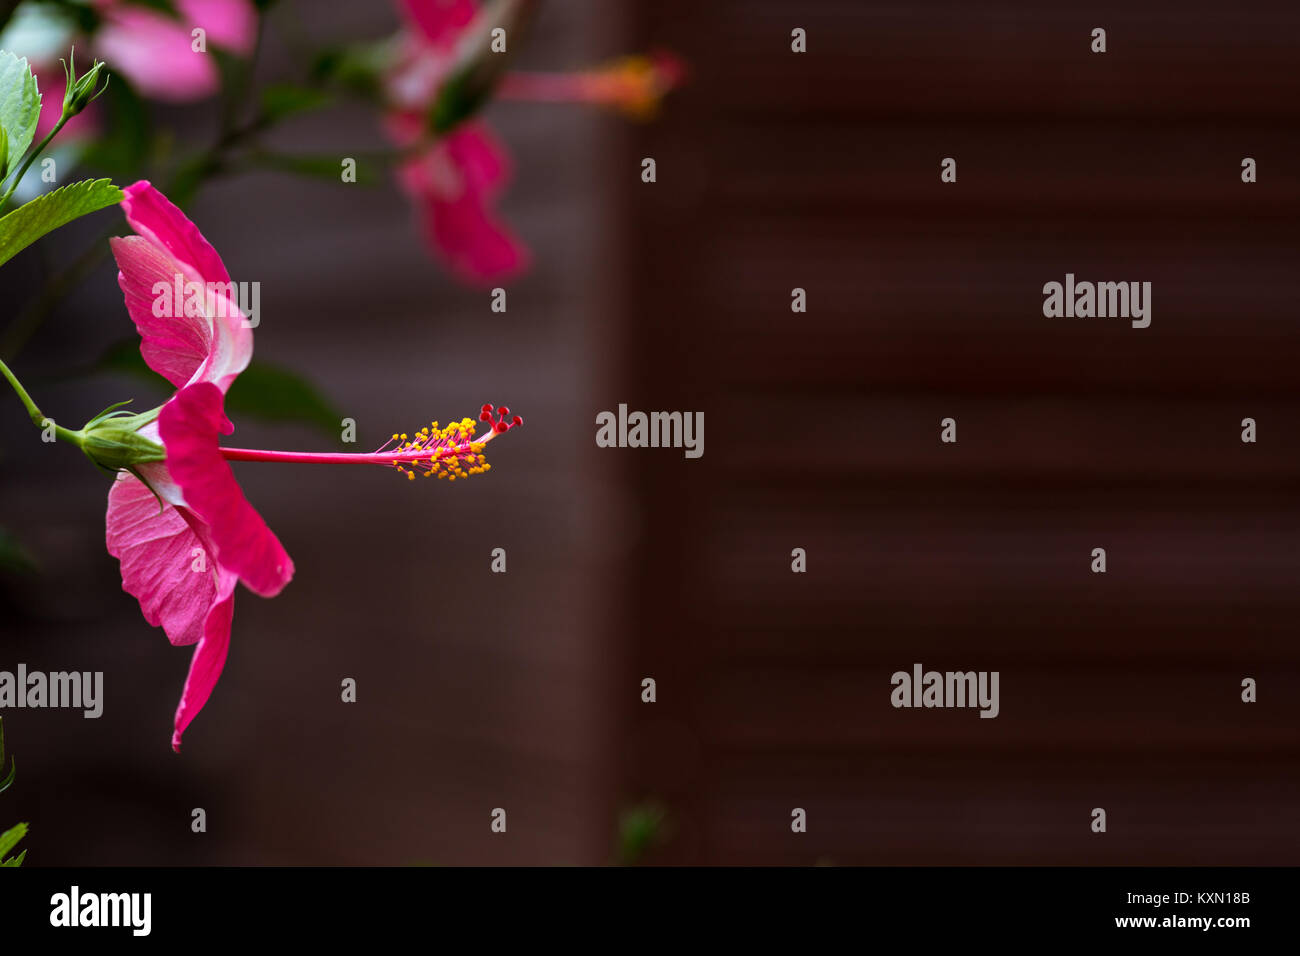 Close up side on view of Pink petal flower with exposed protruding style blurred background with copy space. - Stock Image